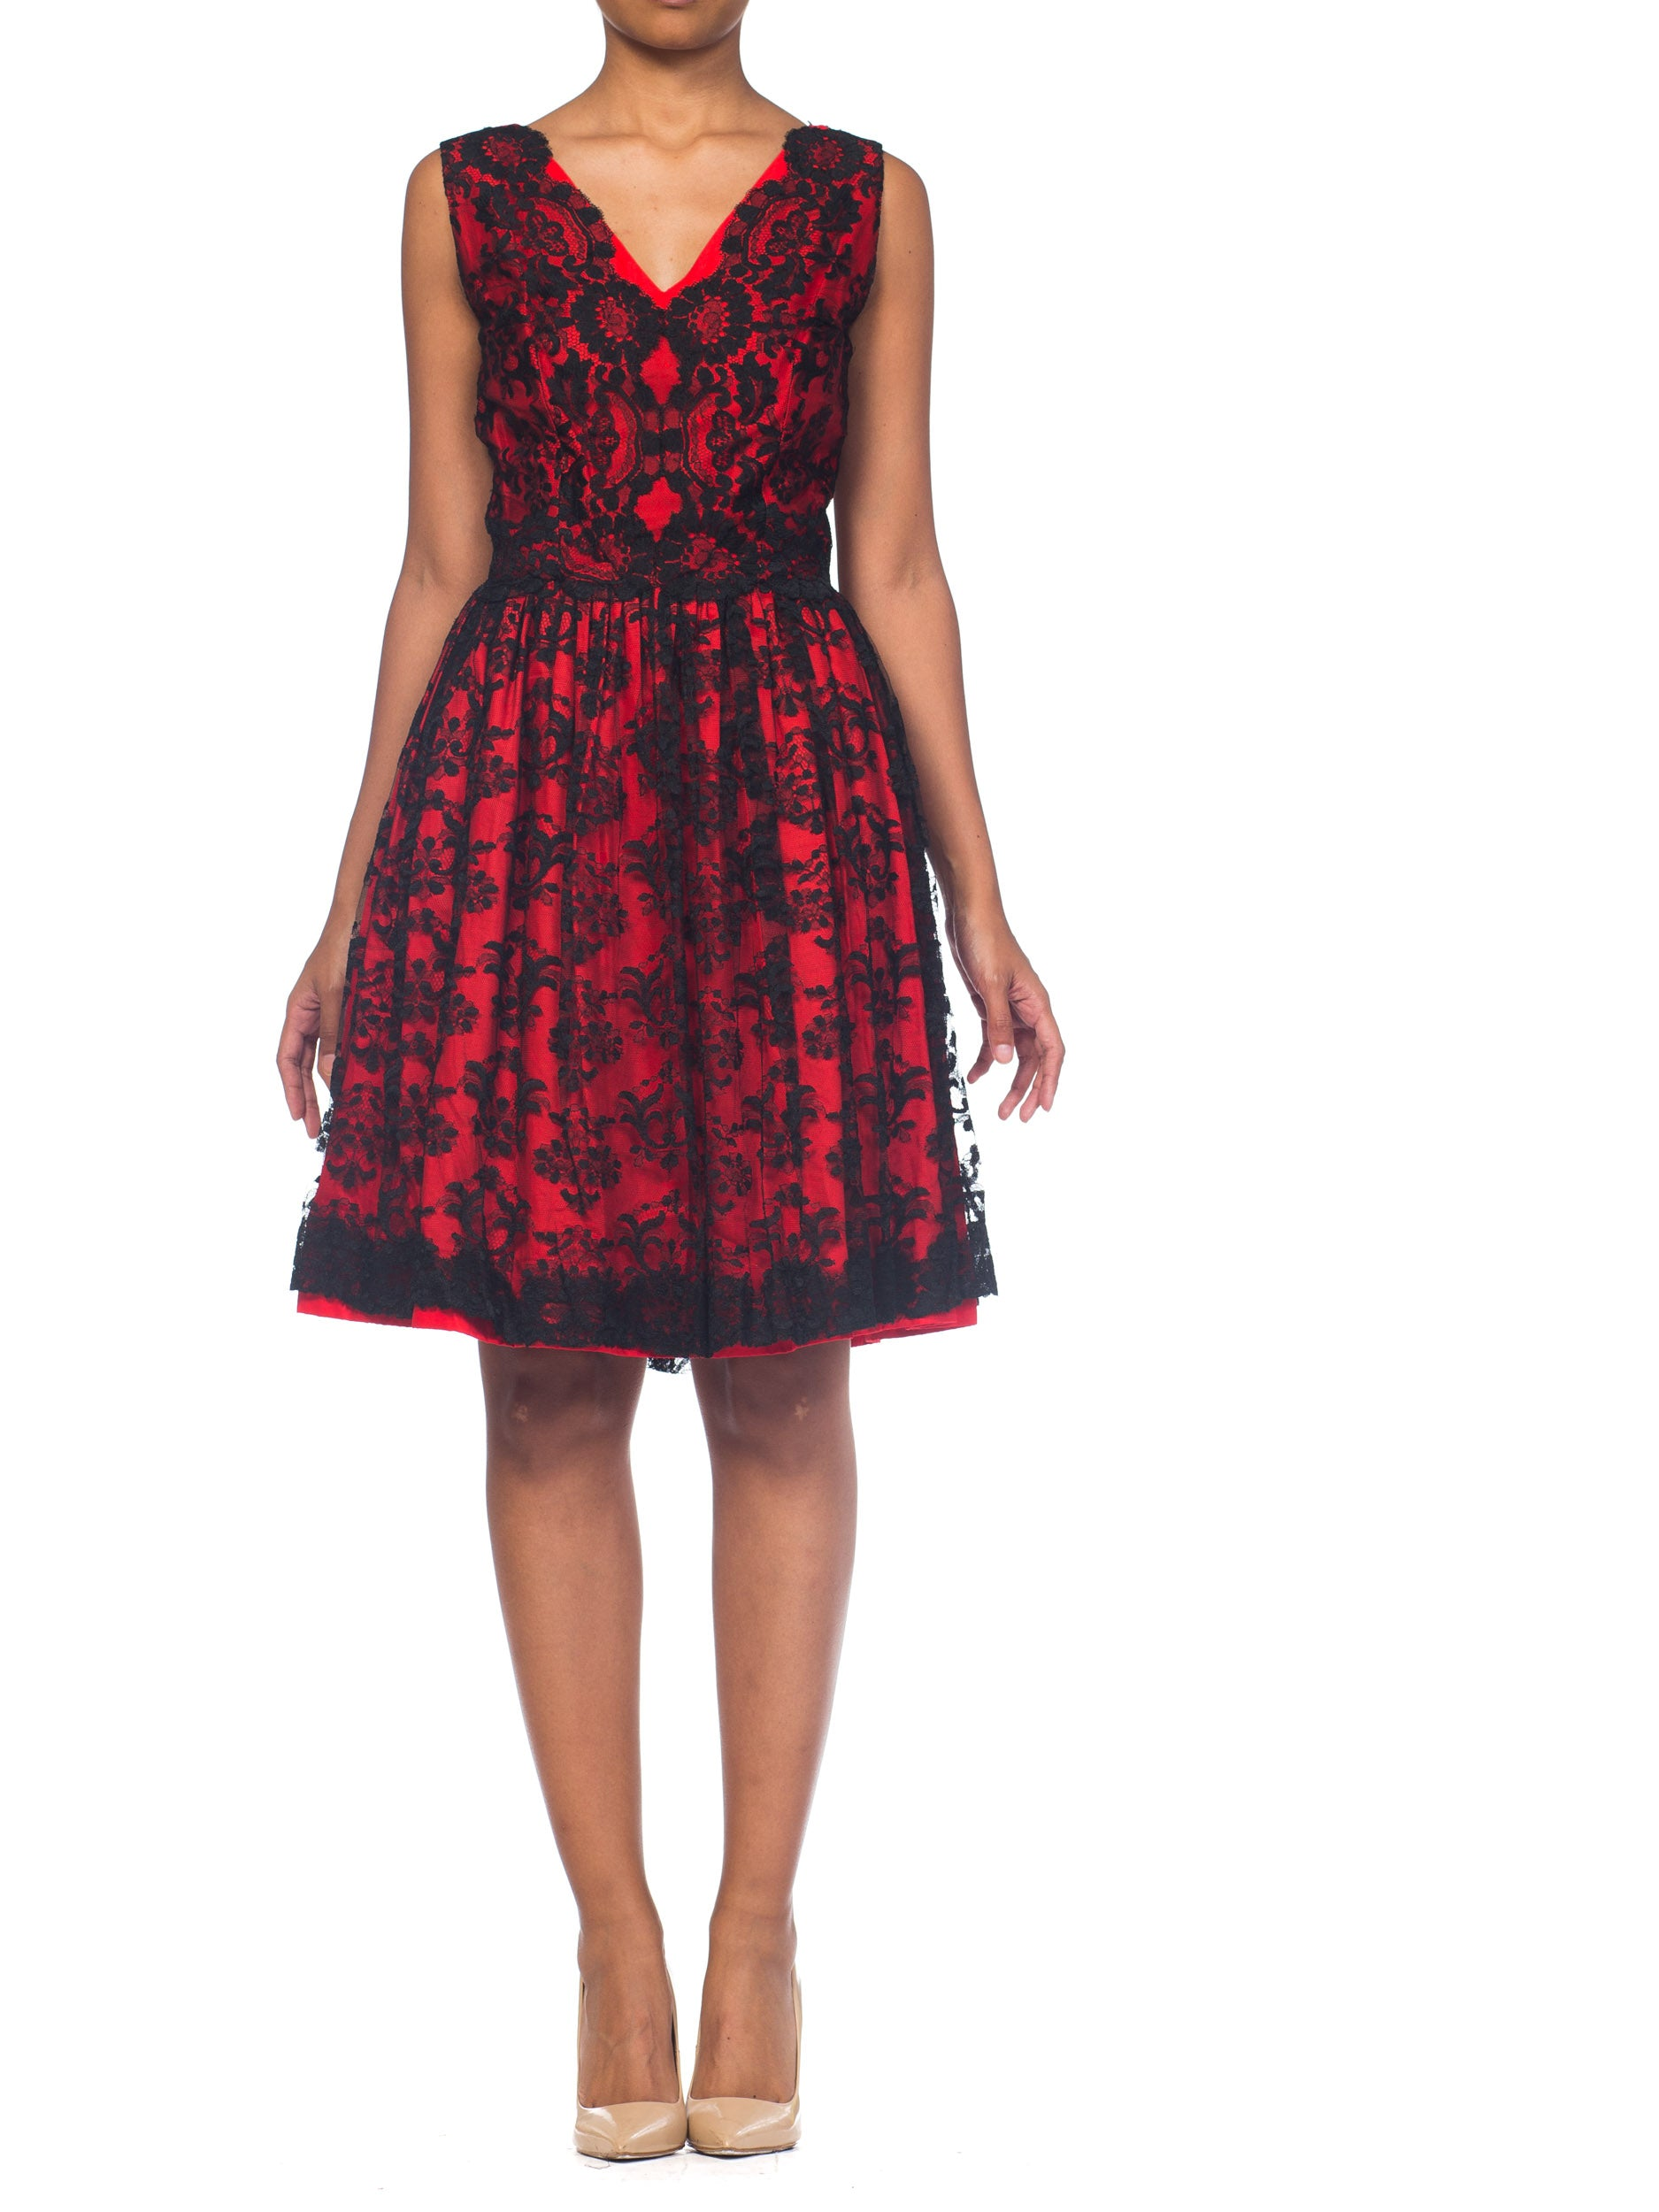 1950S Black & Red Cotton Sateen Chantilly Lace  Cocktail Dress